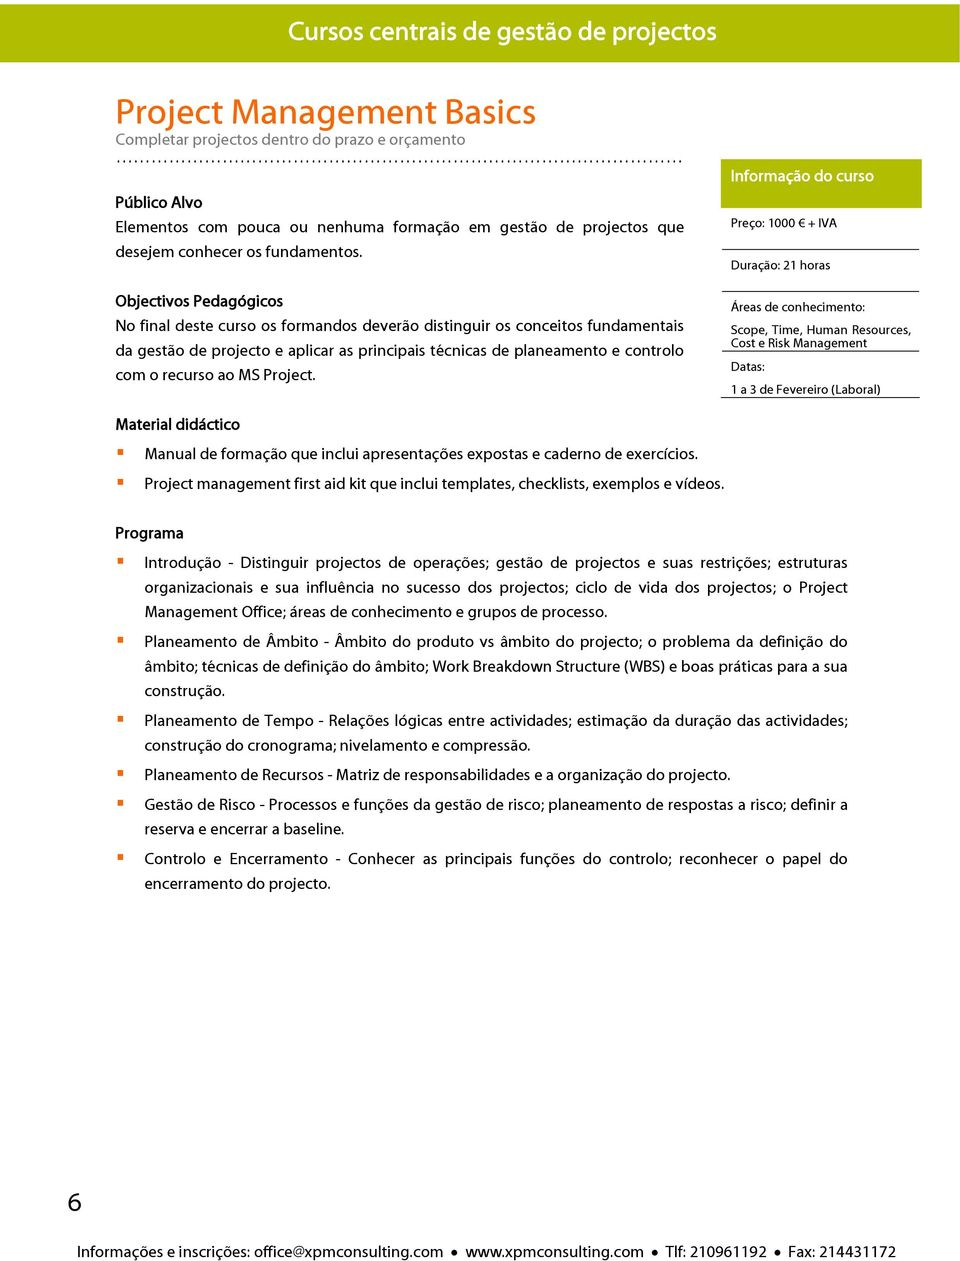 No final deste curso os formandos deverão distinguir os conceitos fundamentais da gestão de projecto e aplicar as principais técnicas de planeamento e controlo com o recurso ao MS Project.